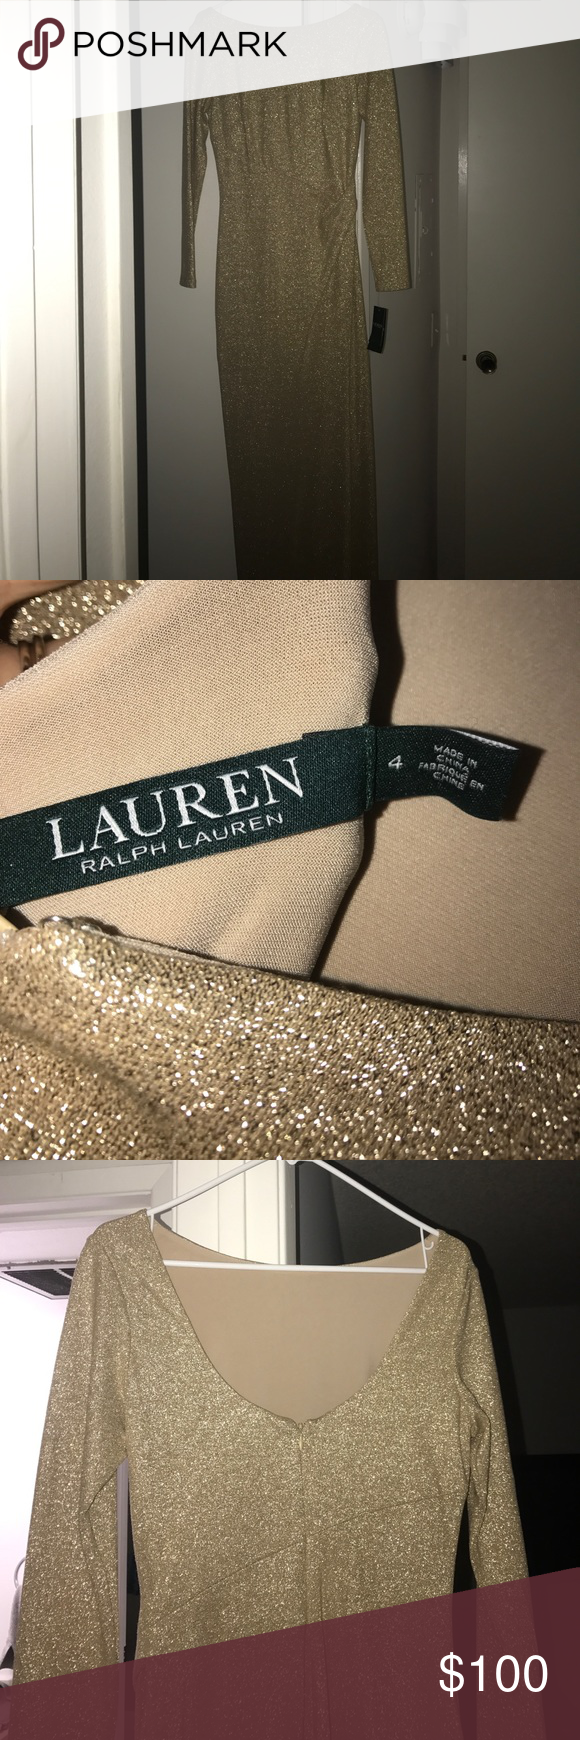 Ralph Lauren gold gown Ralph Lauren gold floor length gown. New with tags on. Open back, slit up to knee on side. Super comfortable and stretchy! Size 4 Ralph Lauren Dresses Prom